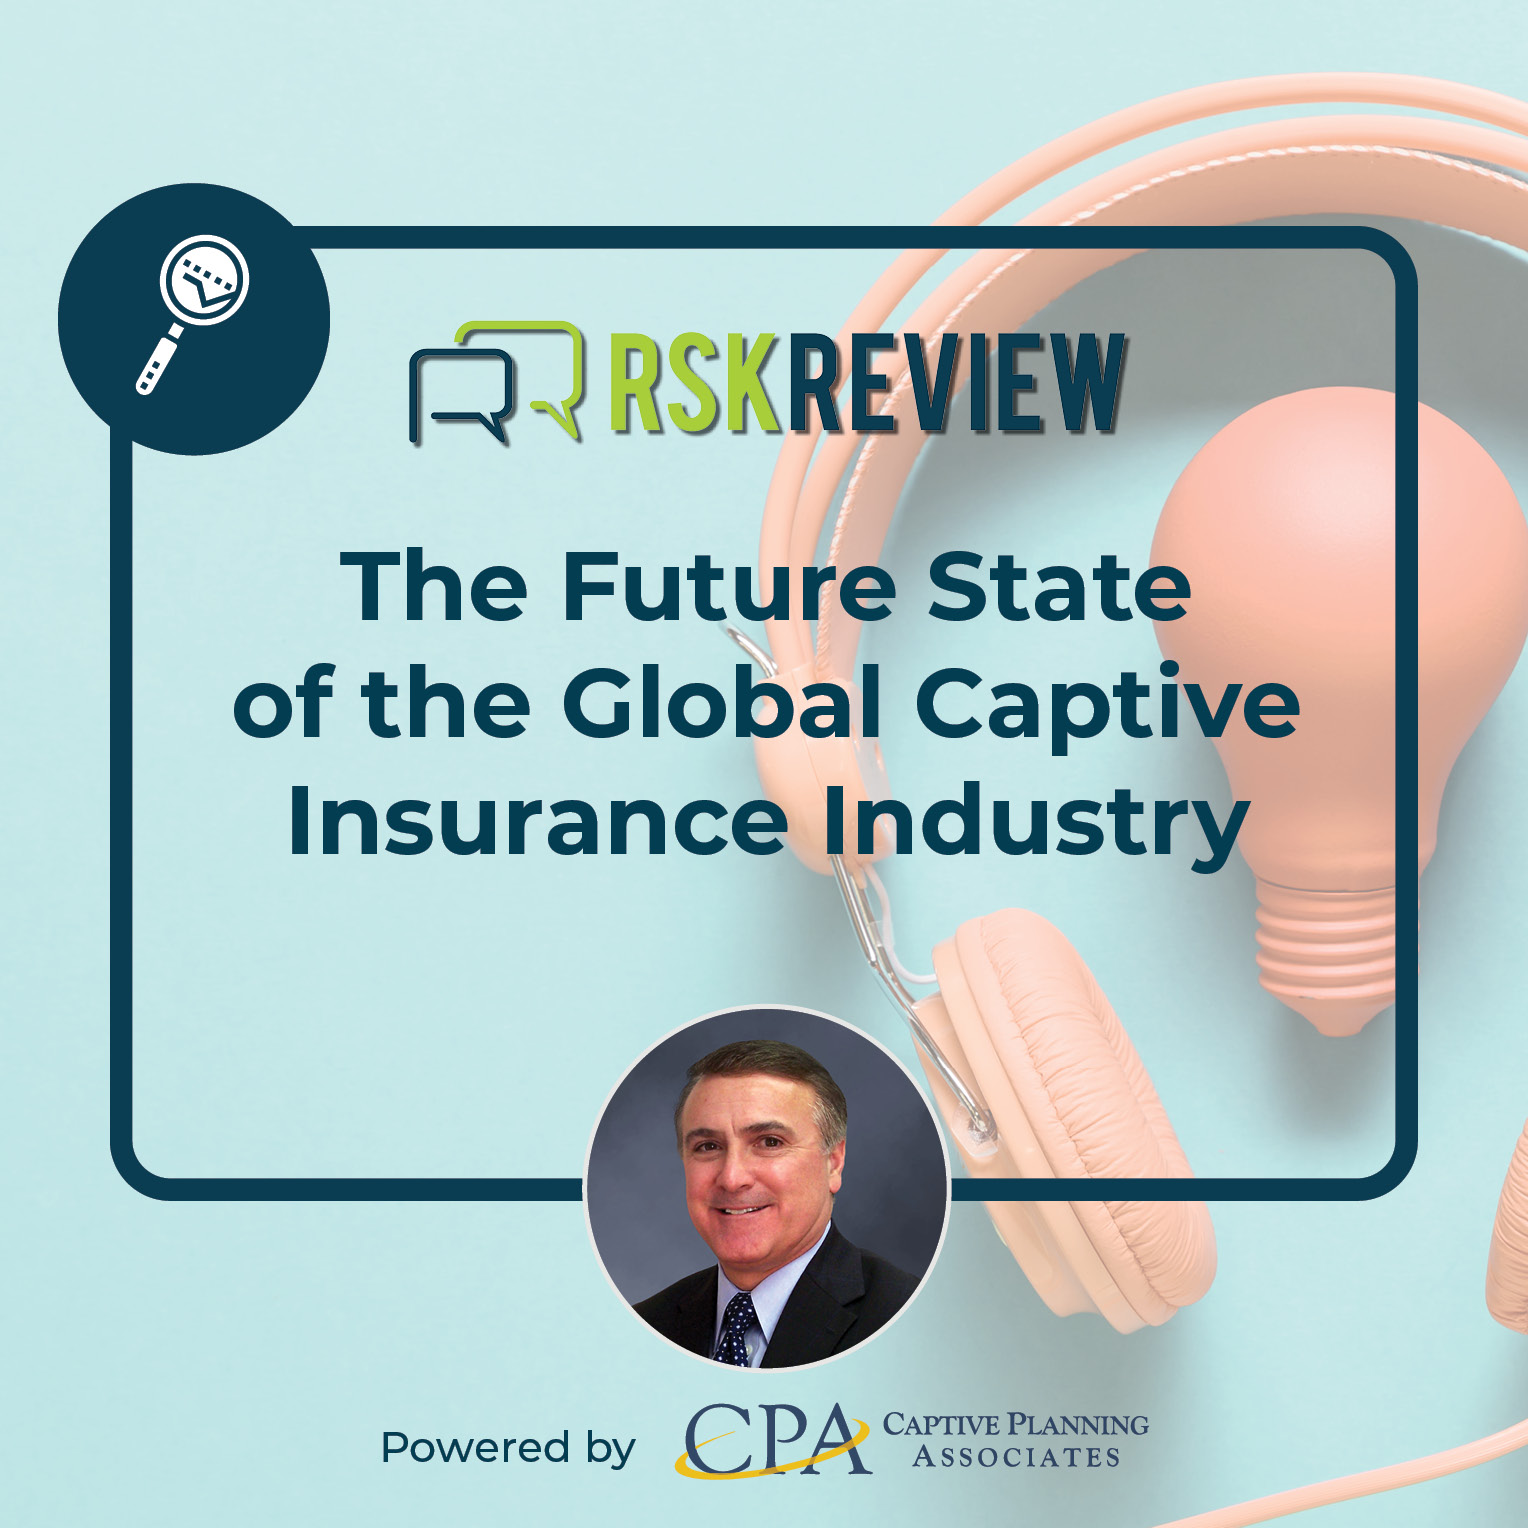 The future state of the global captive insurance industry